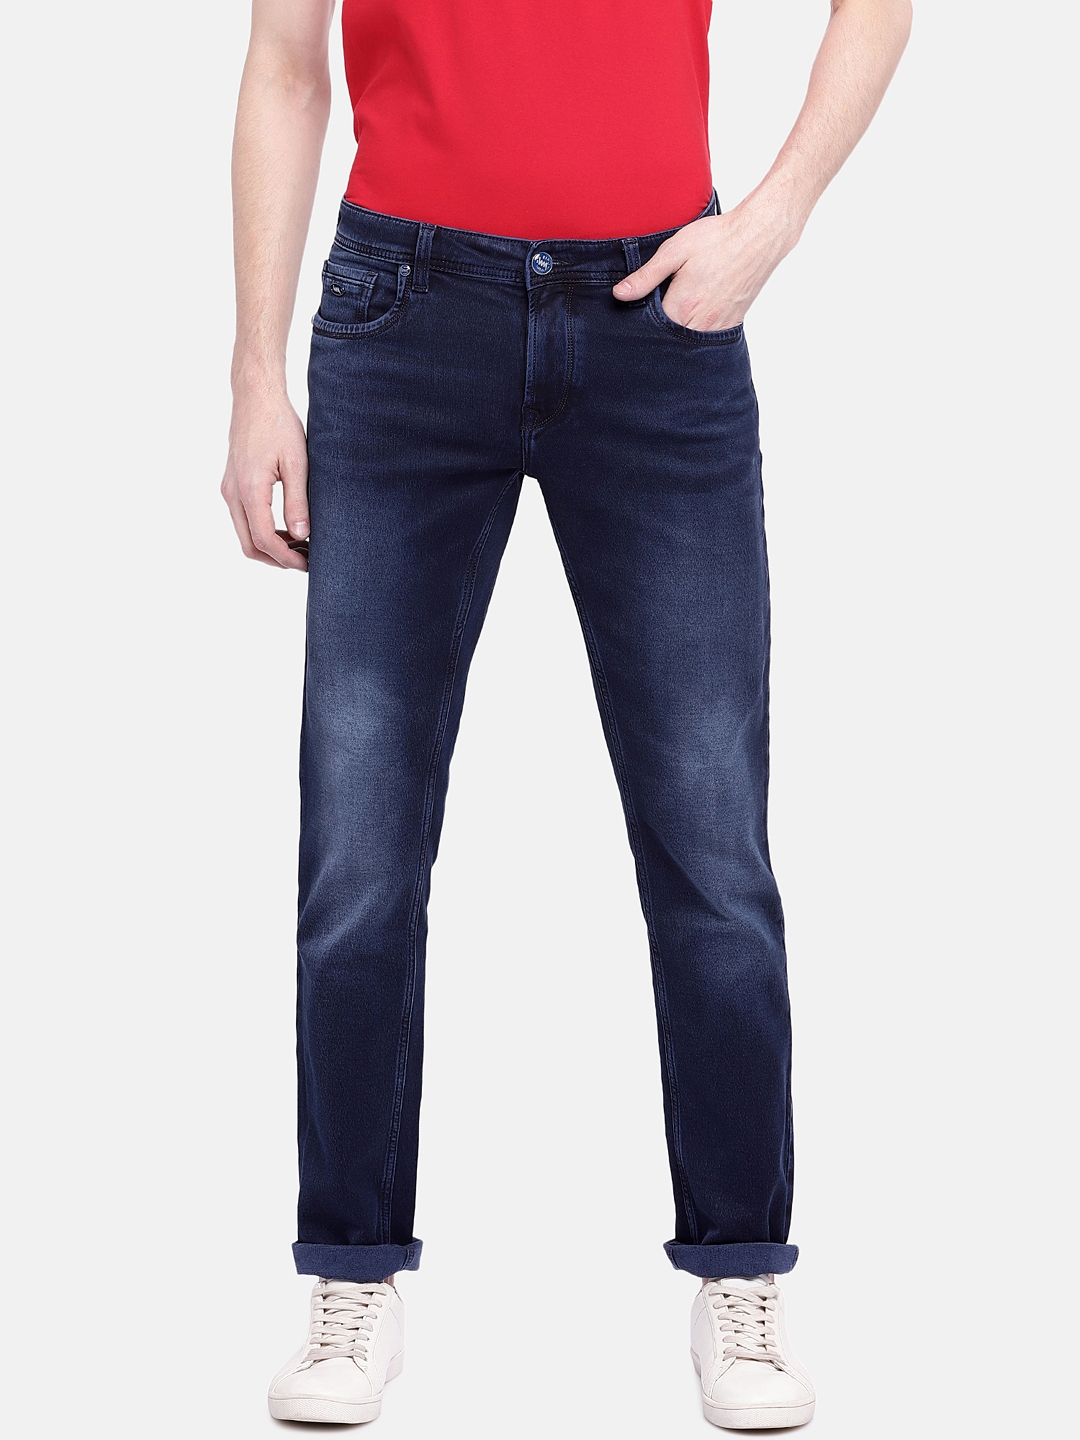 d612f8e7 Buy Lawman Pg3 Men Blue Slim Fit Mid Rise Clean Look Jeans - Jeans ...